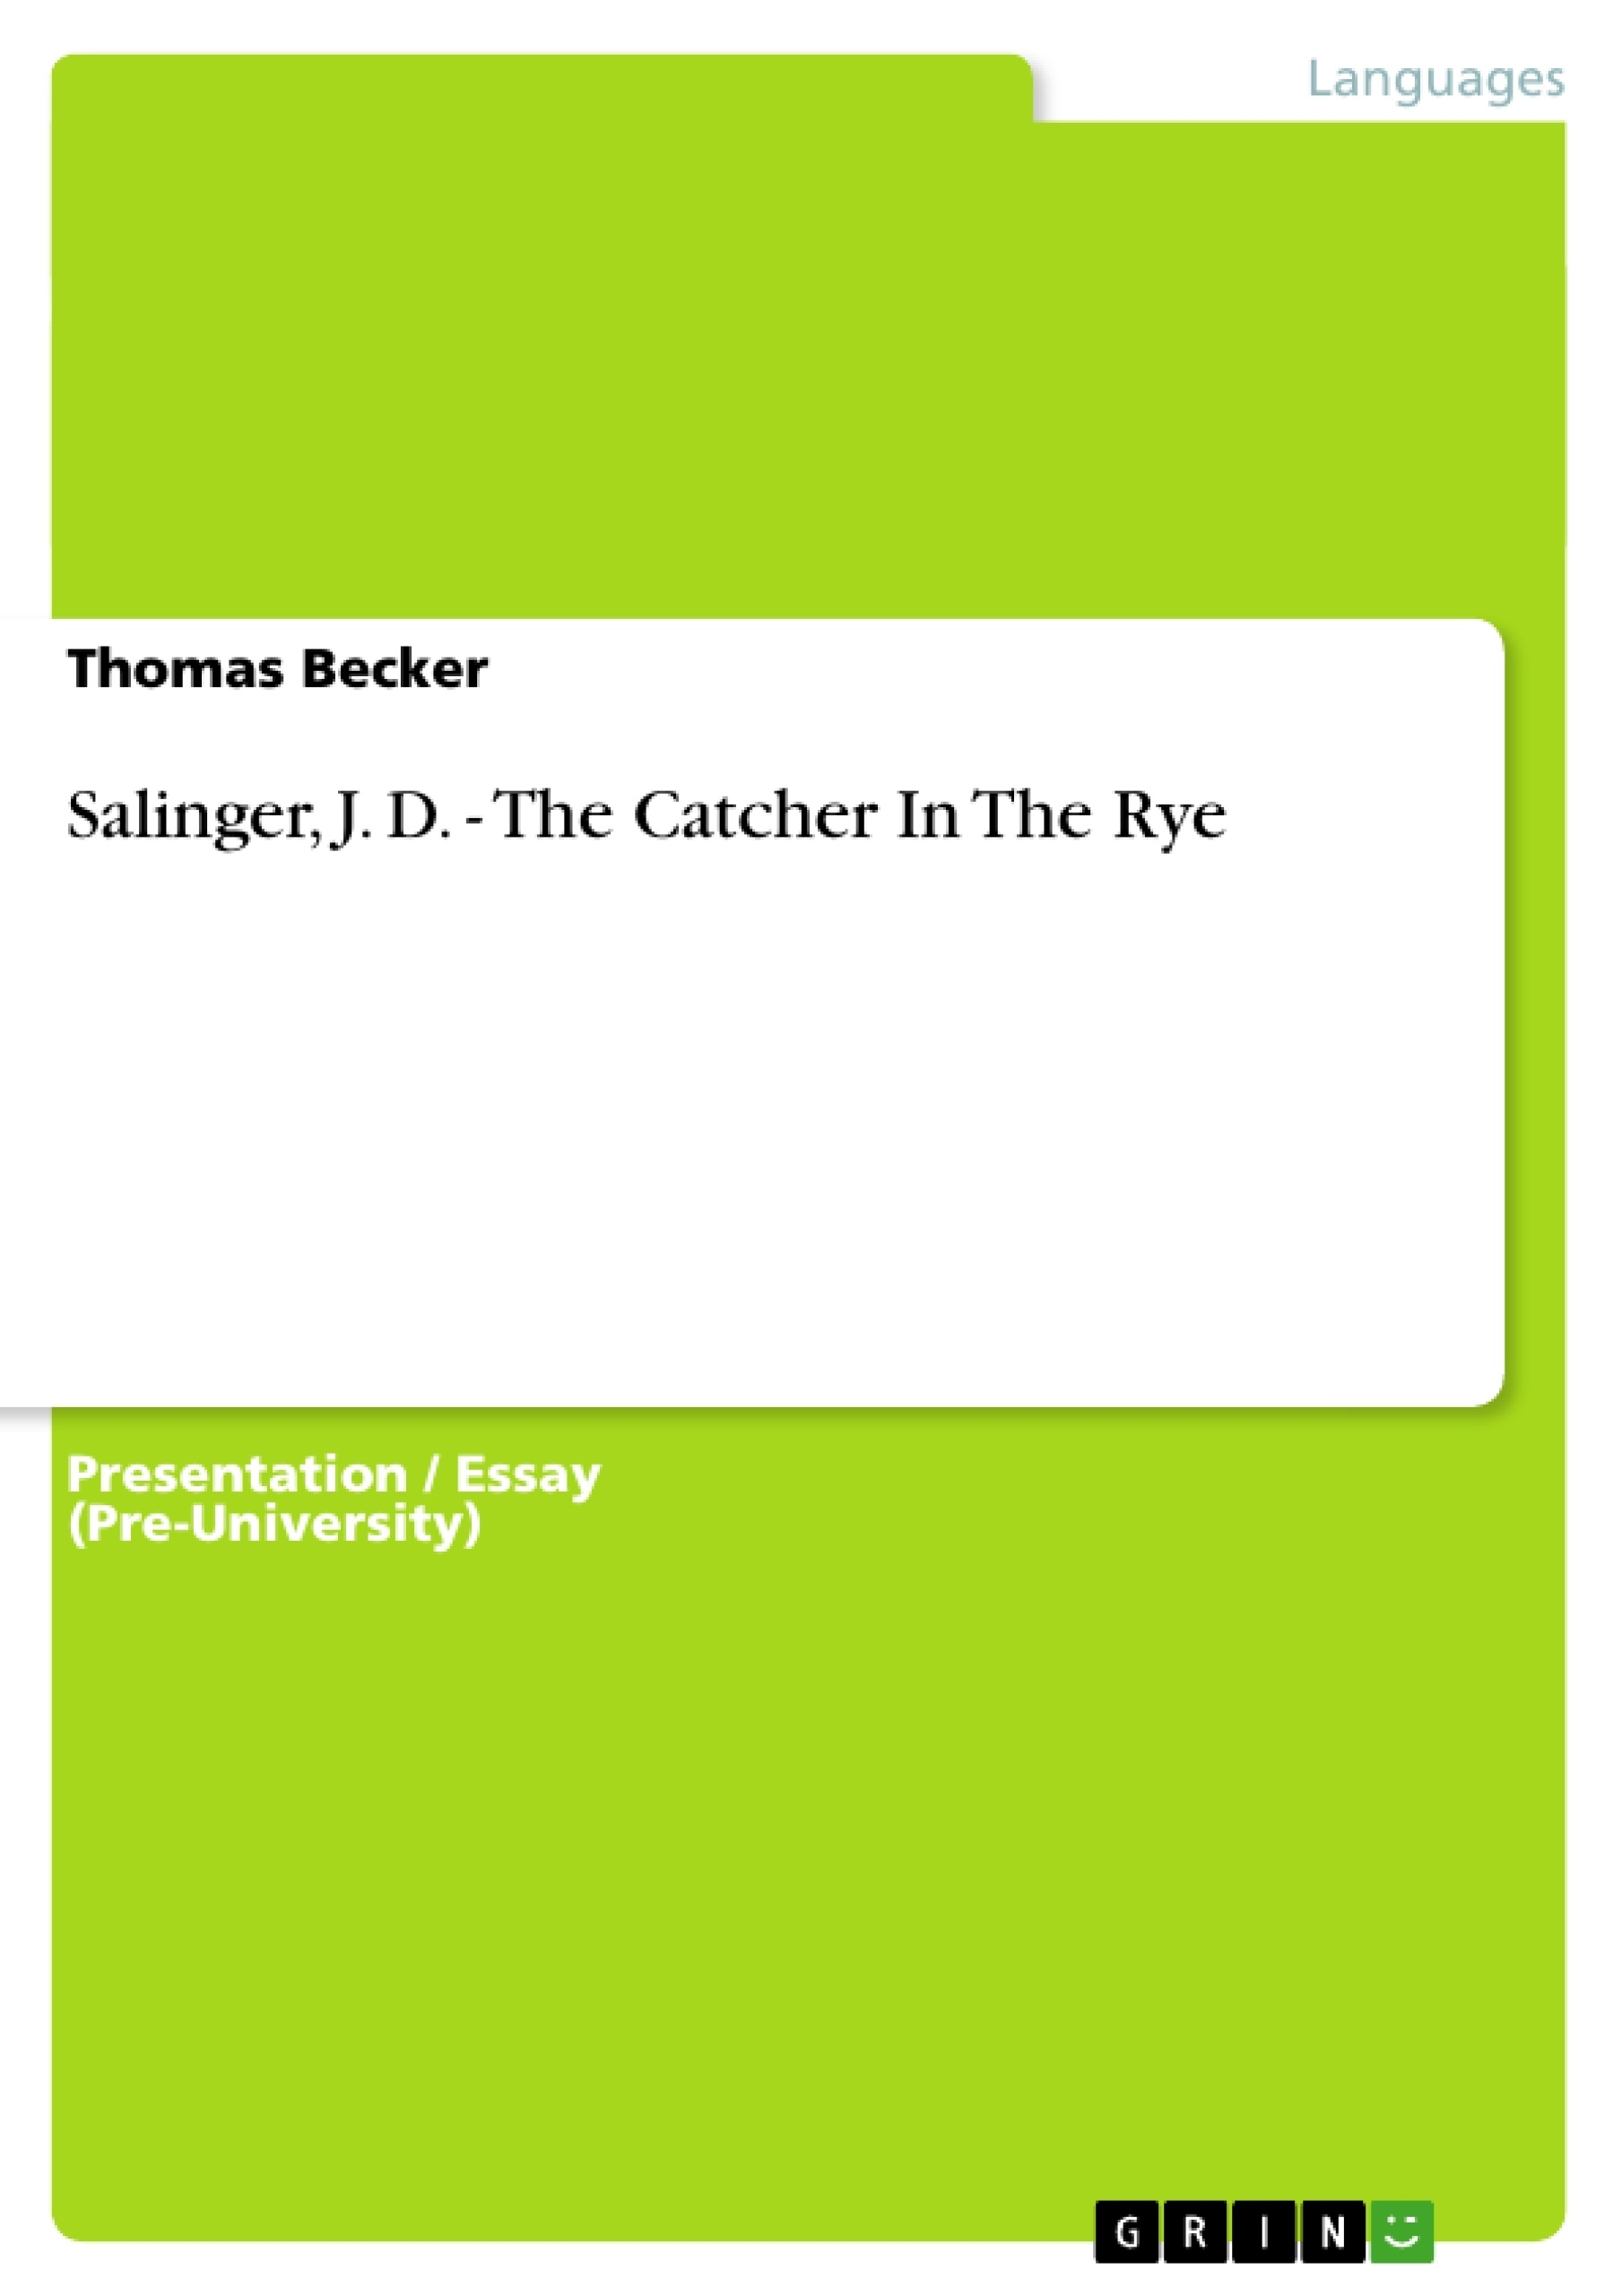 Title: Salinger, J. D. - The Catcher In The Rye